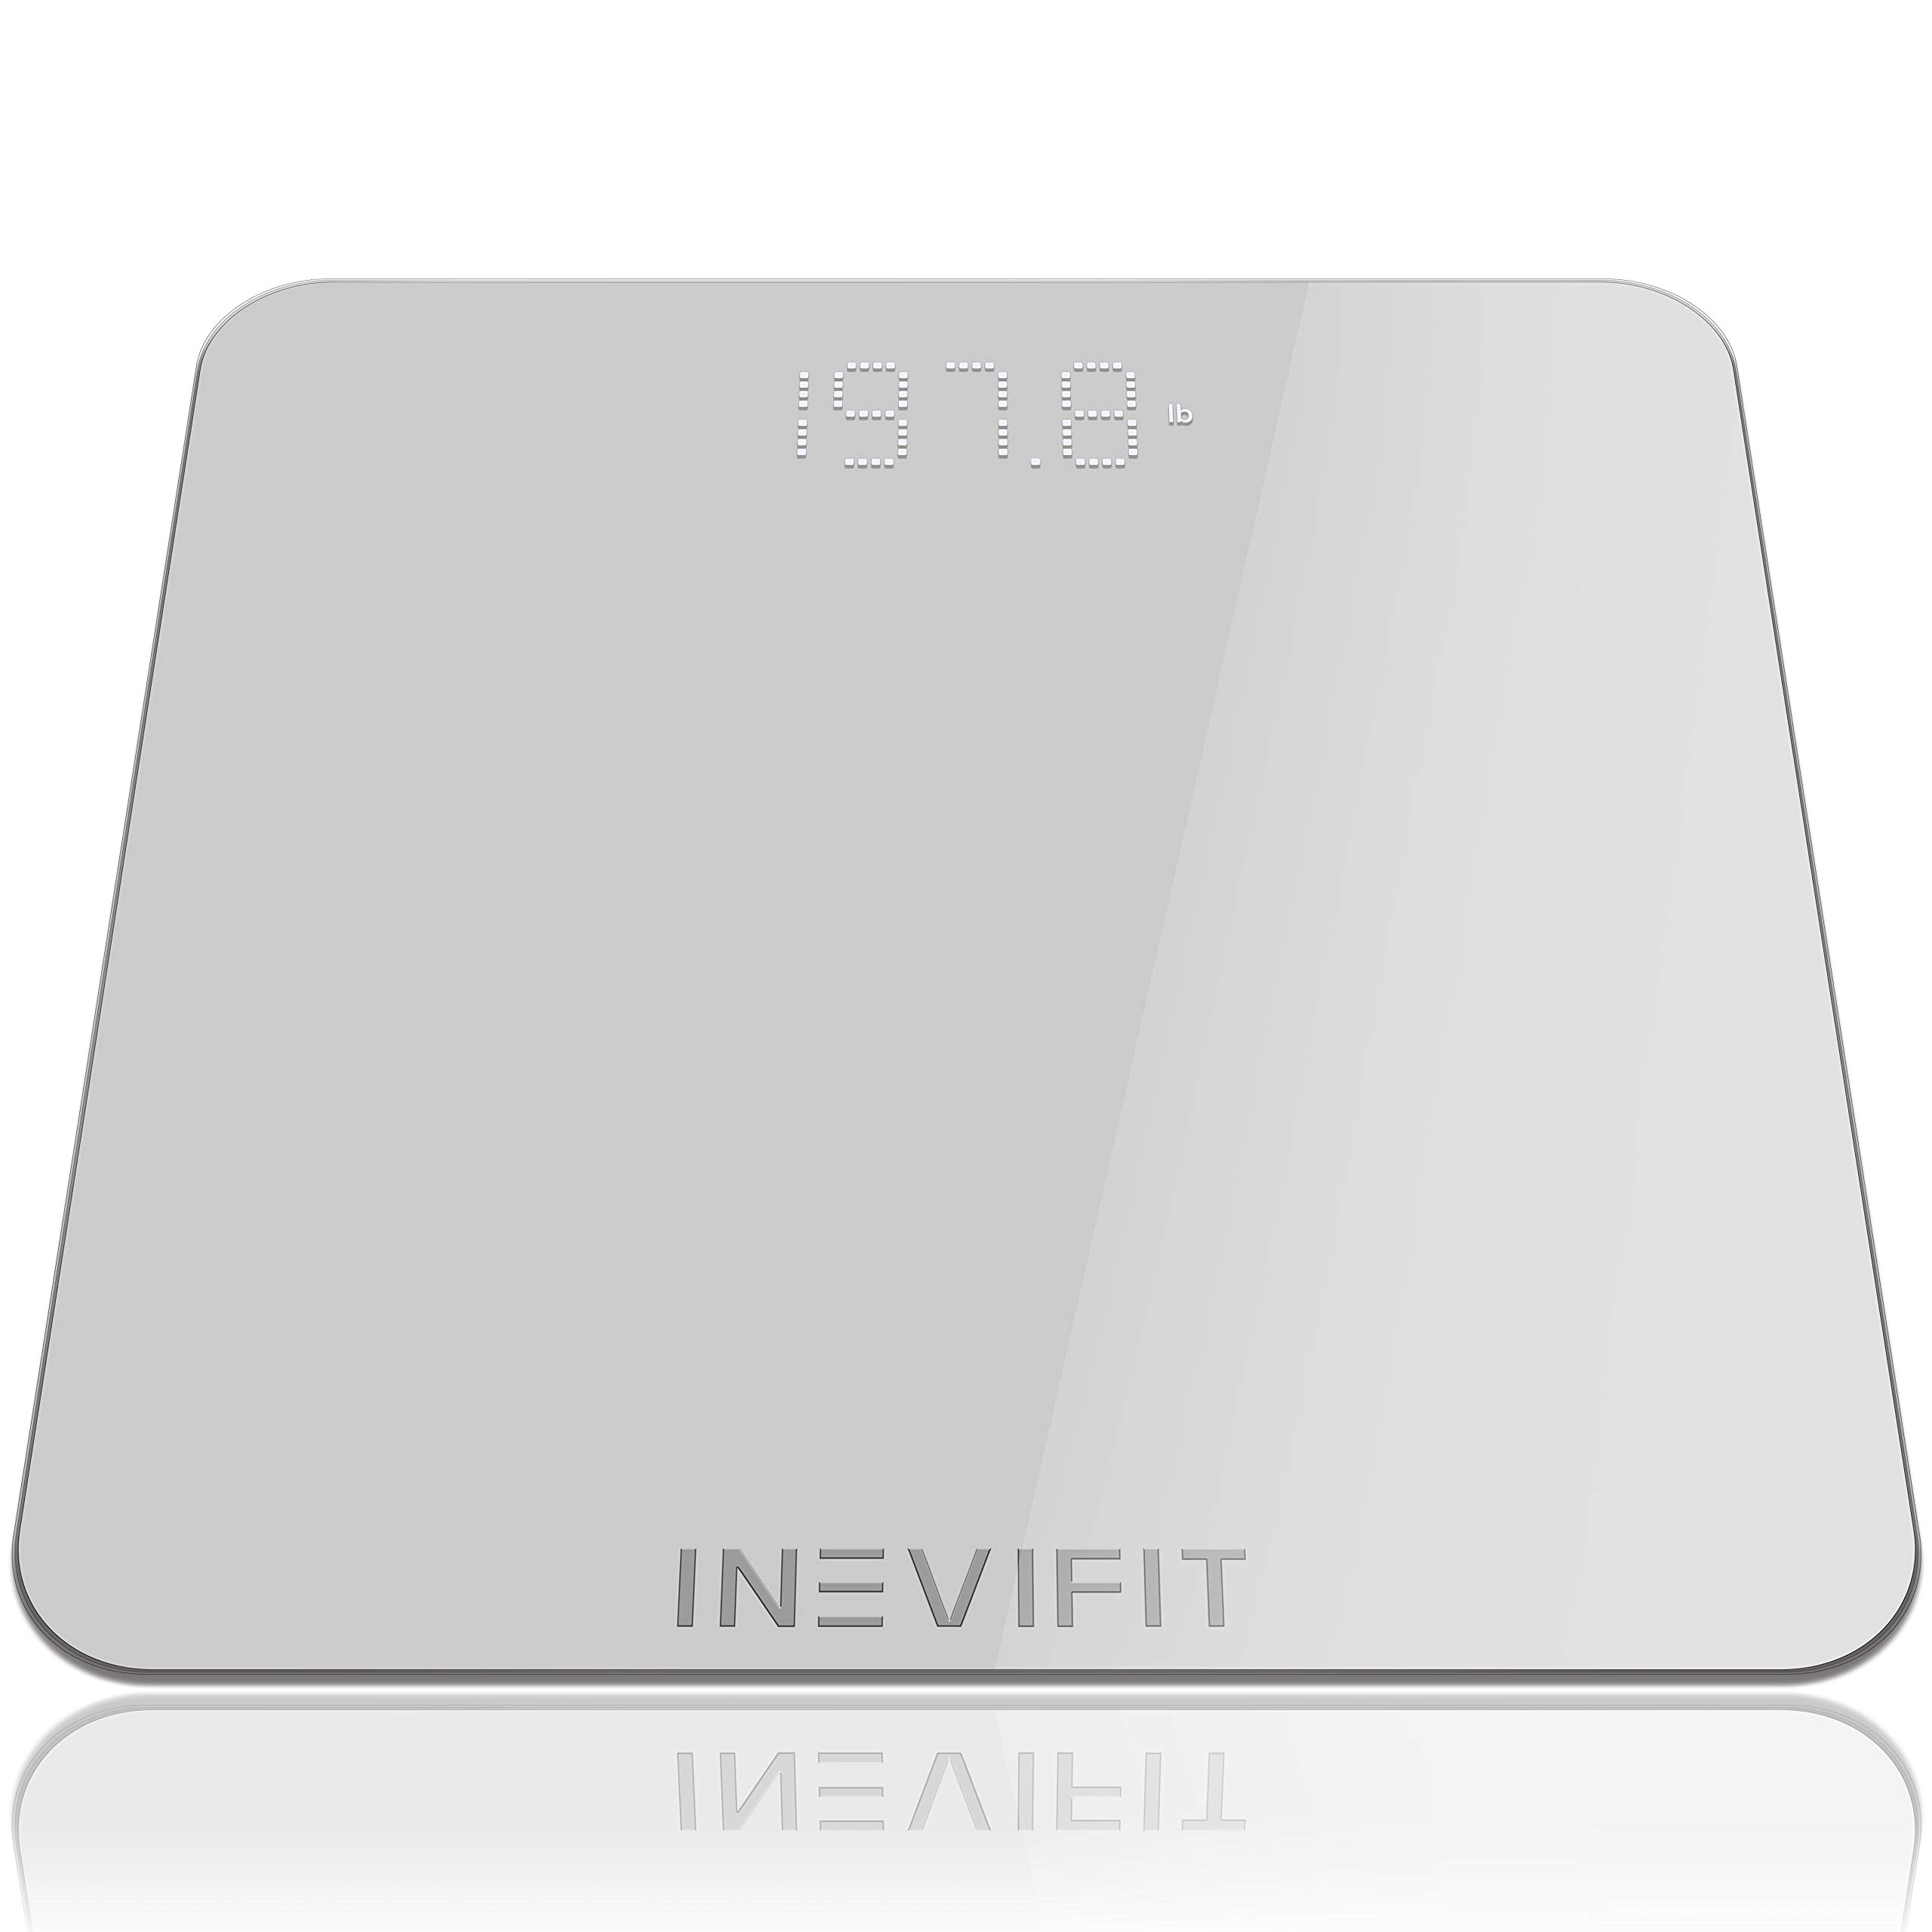 INEVIFIT Bathroom Scale, Highly Accurate Digital Bathroom Body Scale, Measures Weight for Multiple Users. Includes a 5-Year Warranty by INEVIFIT